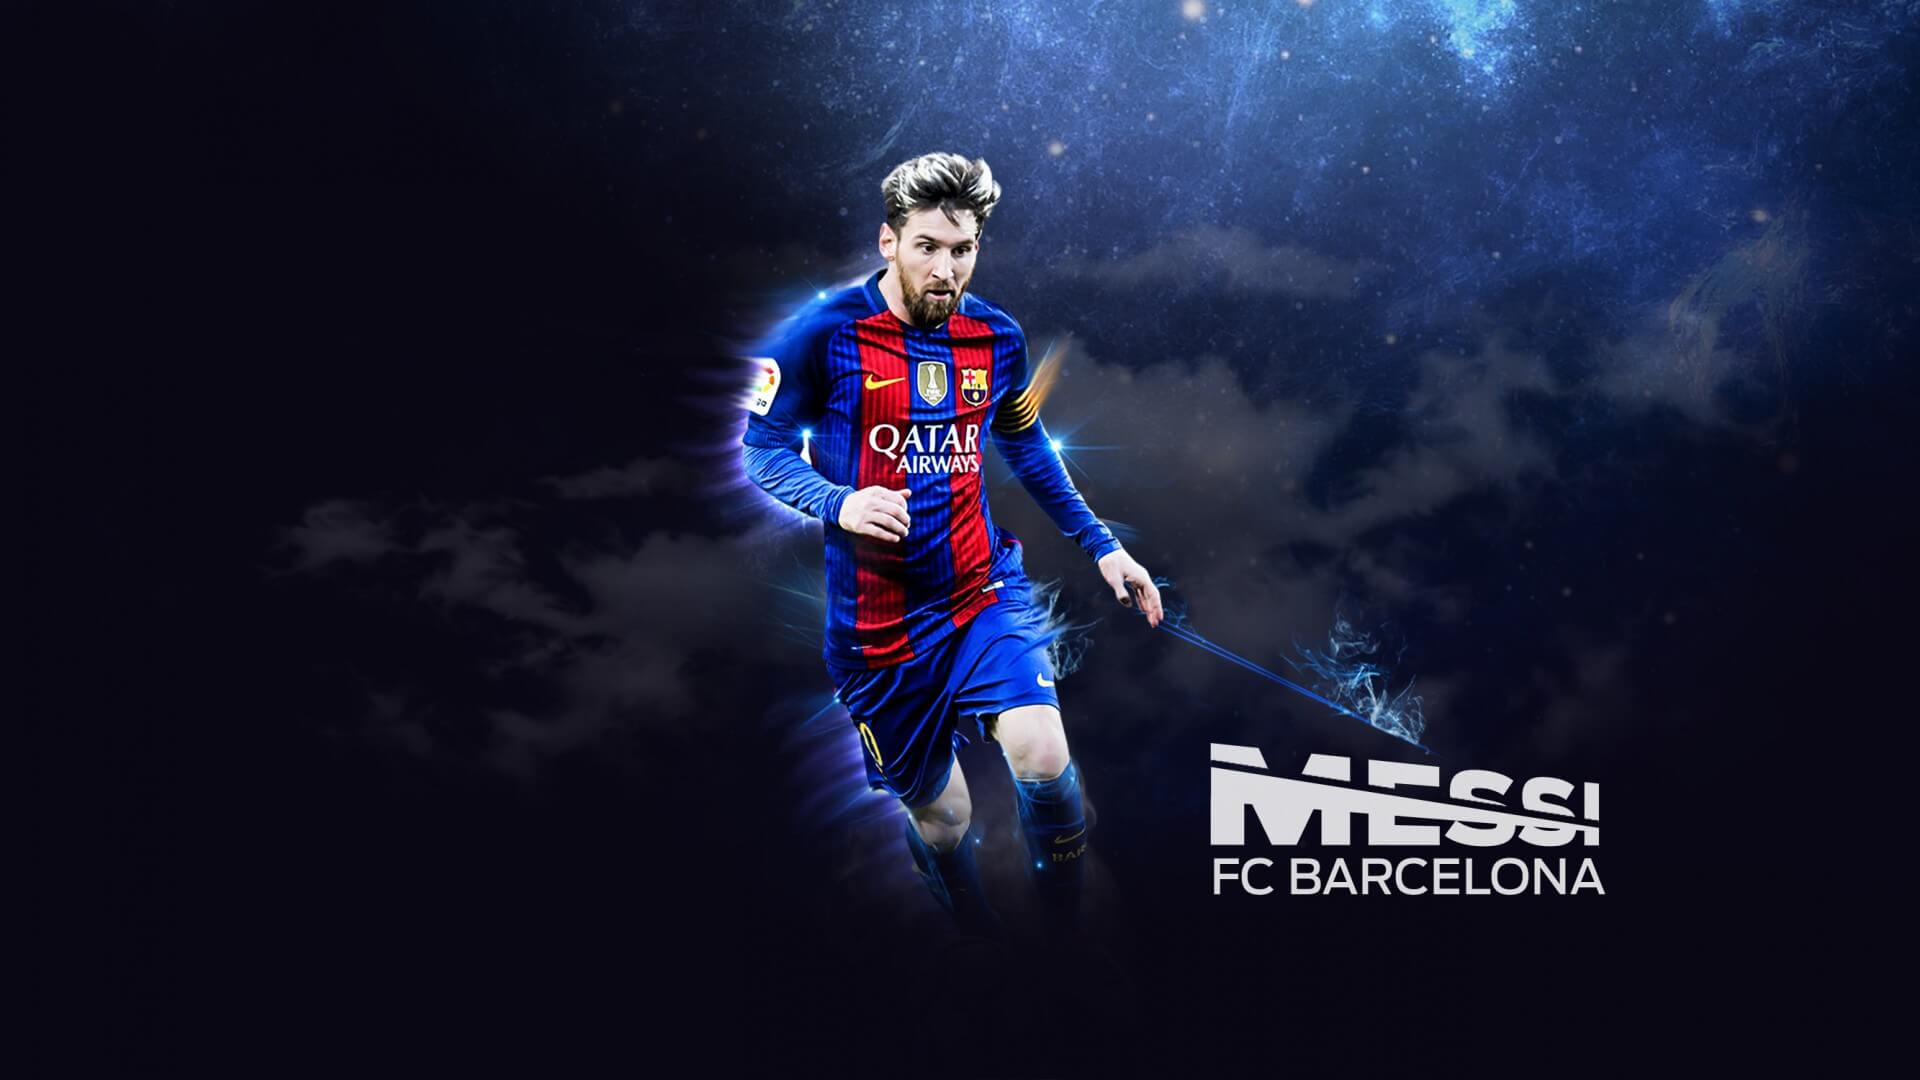 messi background music